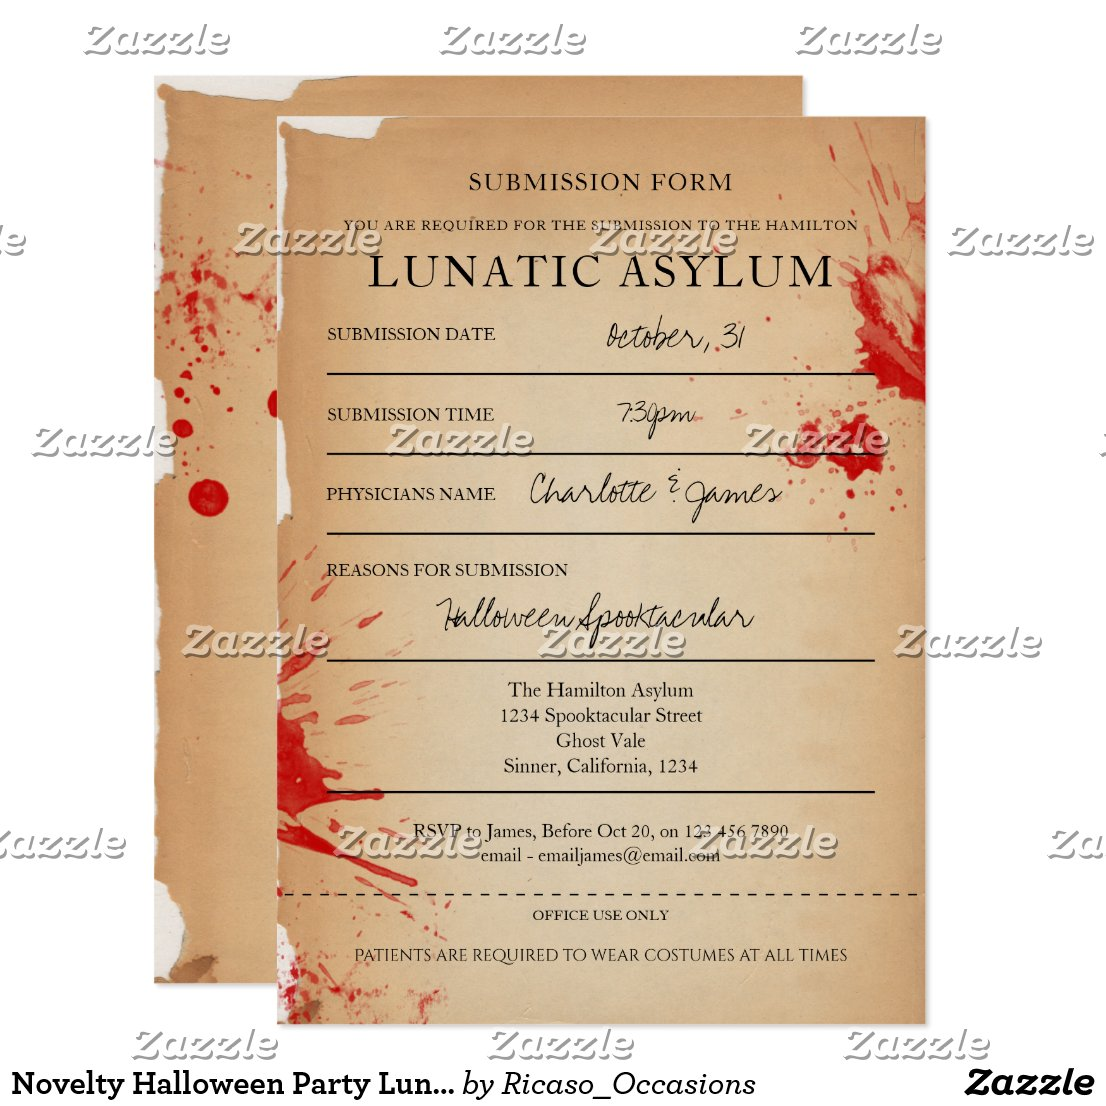 Novelty Halloween Party Lunatic Asylum Invitation